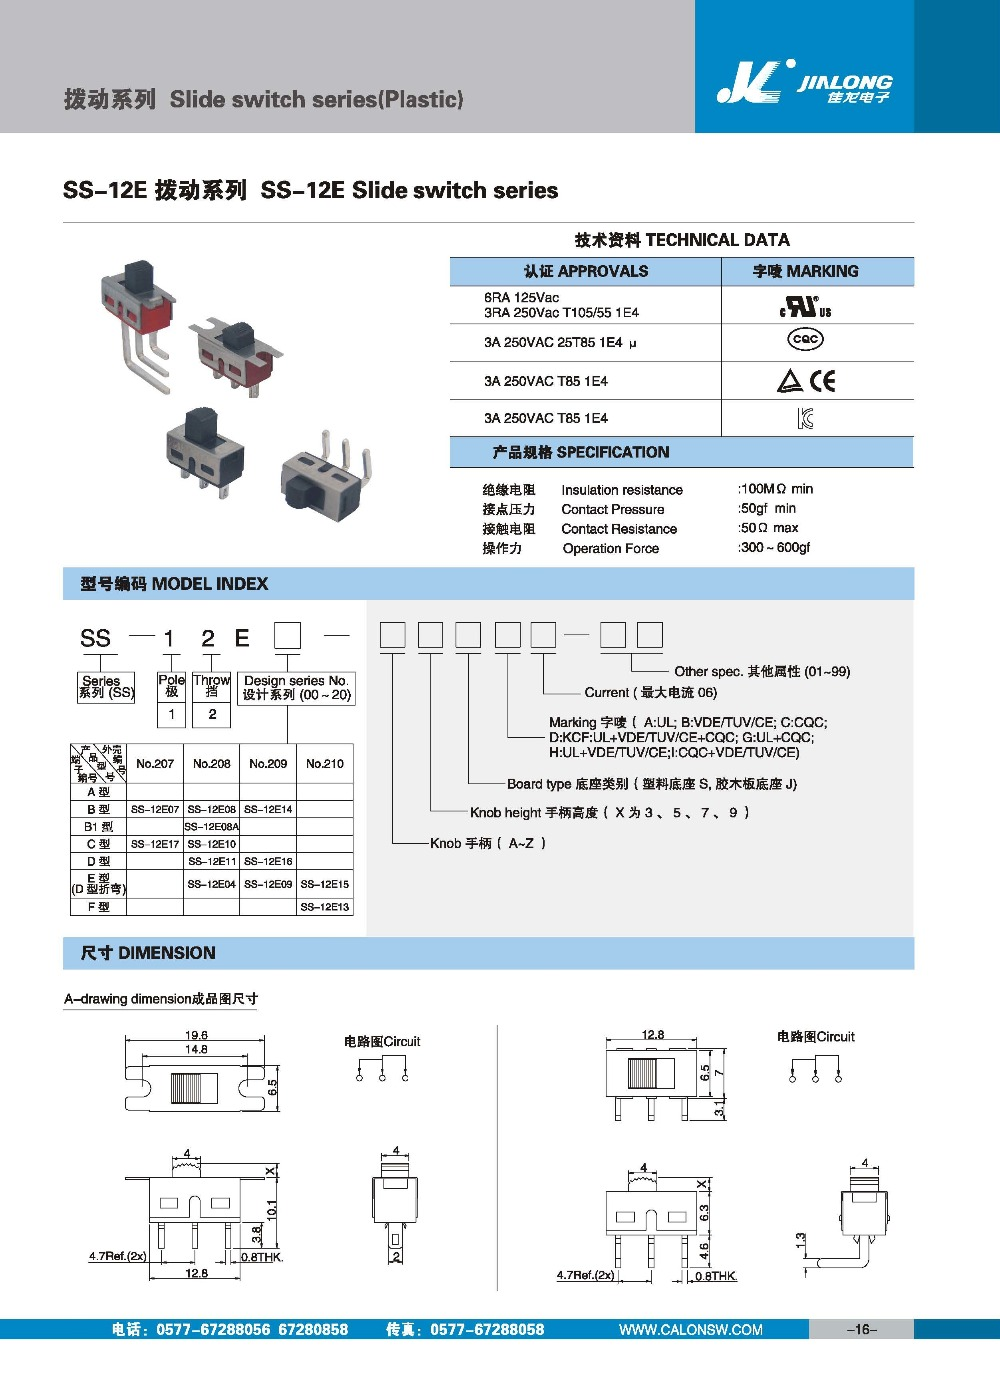 KC approved UL TUV CE mini slide switch